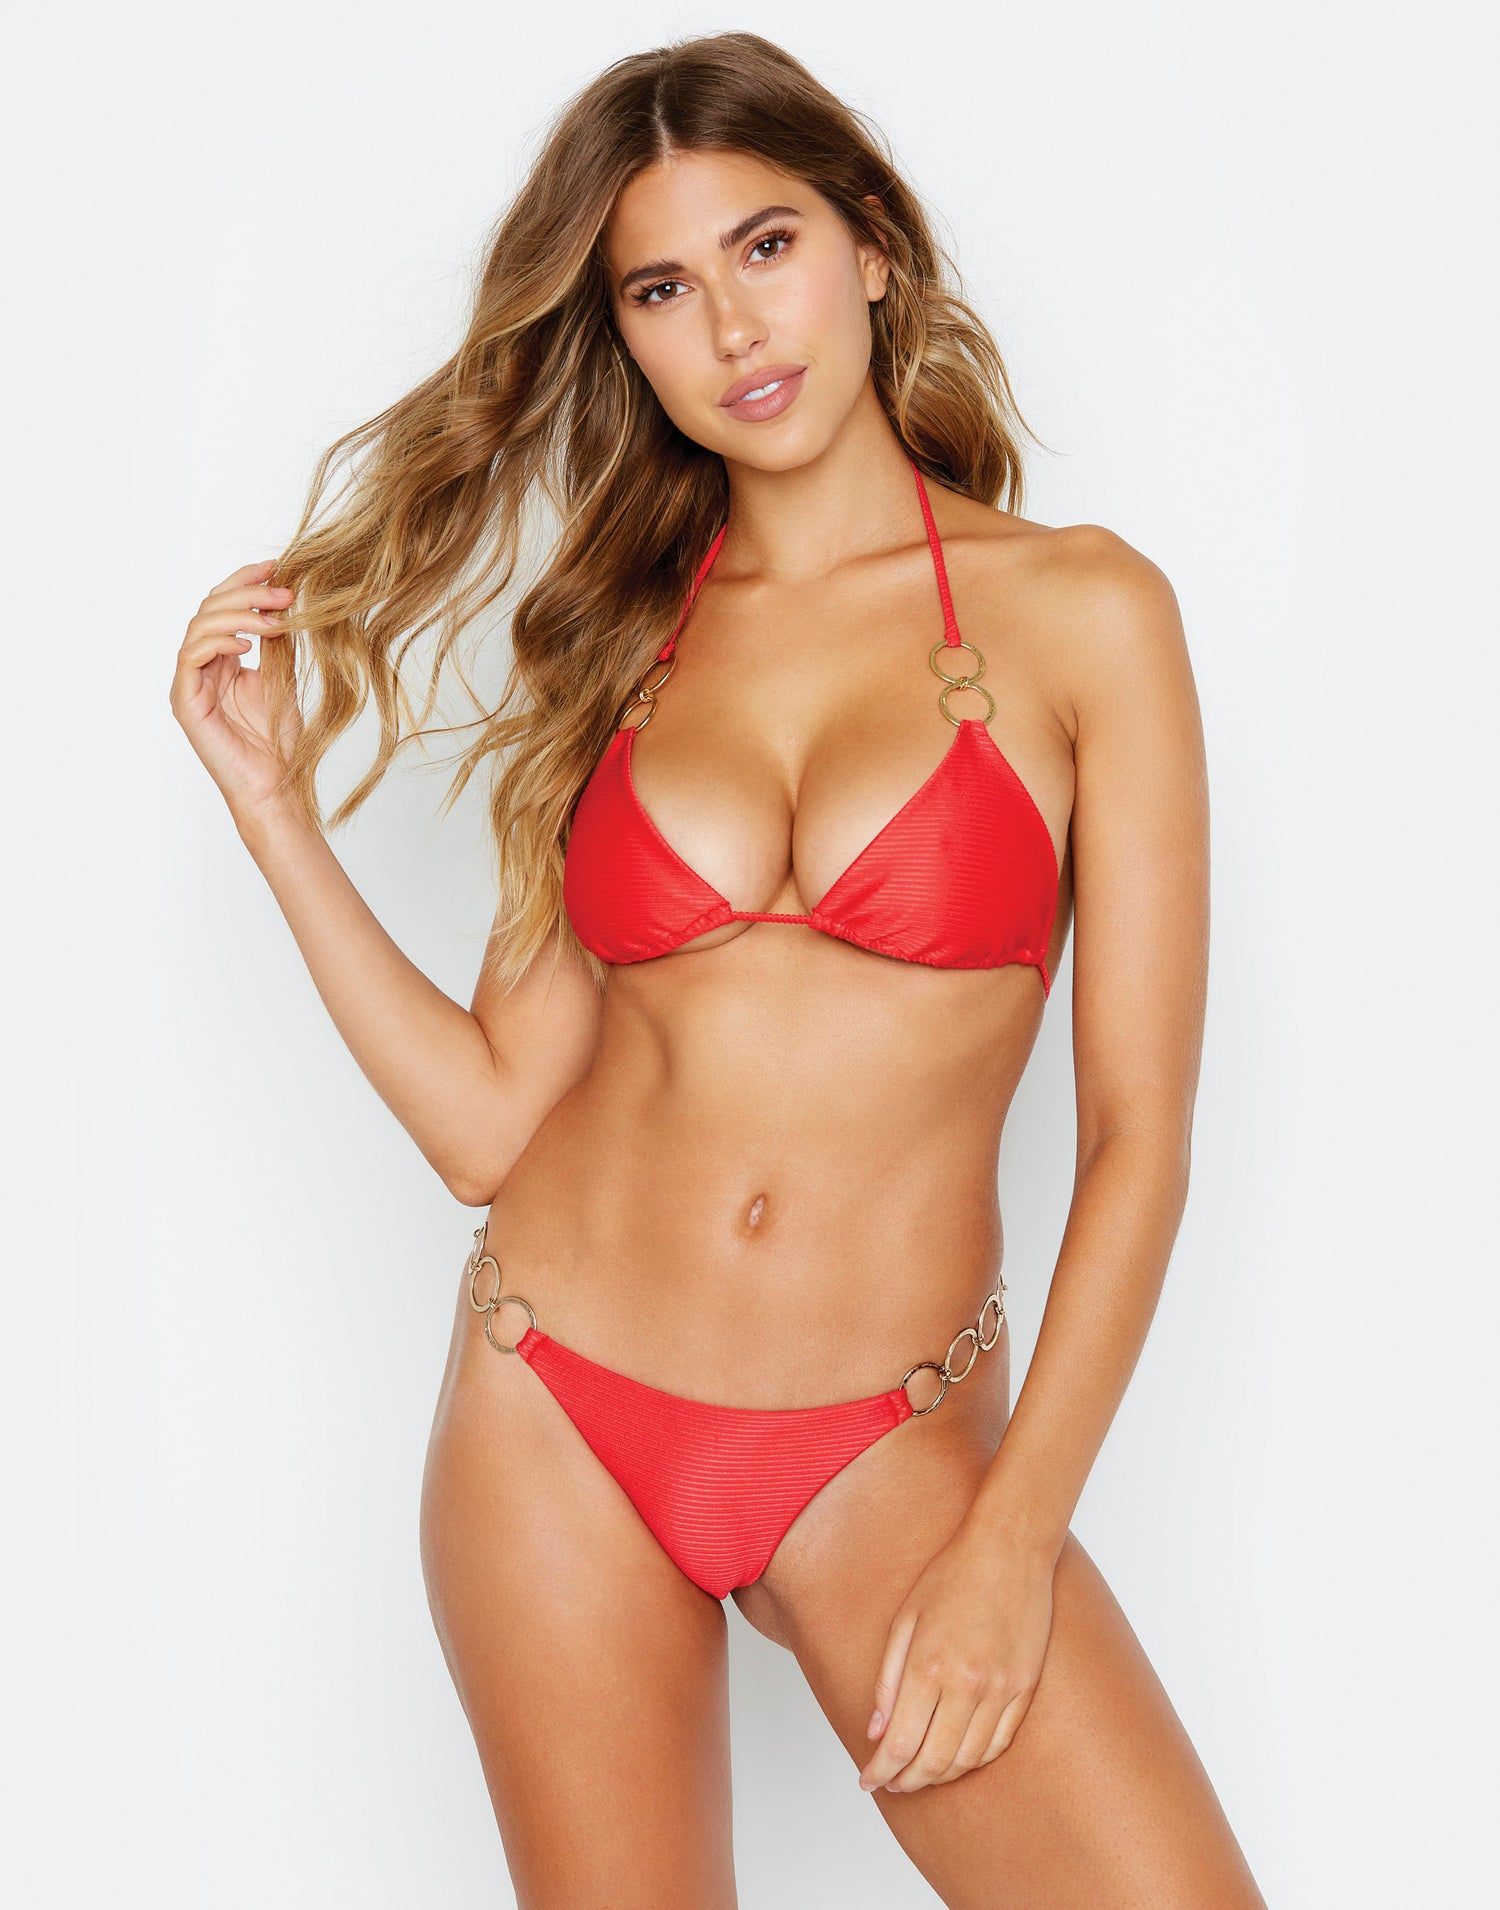 Nadia Triangle Bikini Top in Red Rib with Gold Hardware - front view